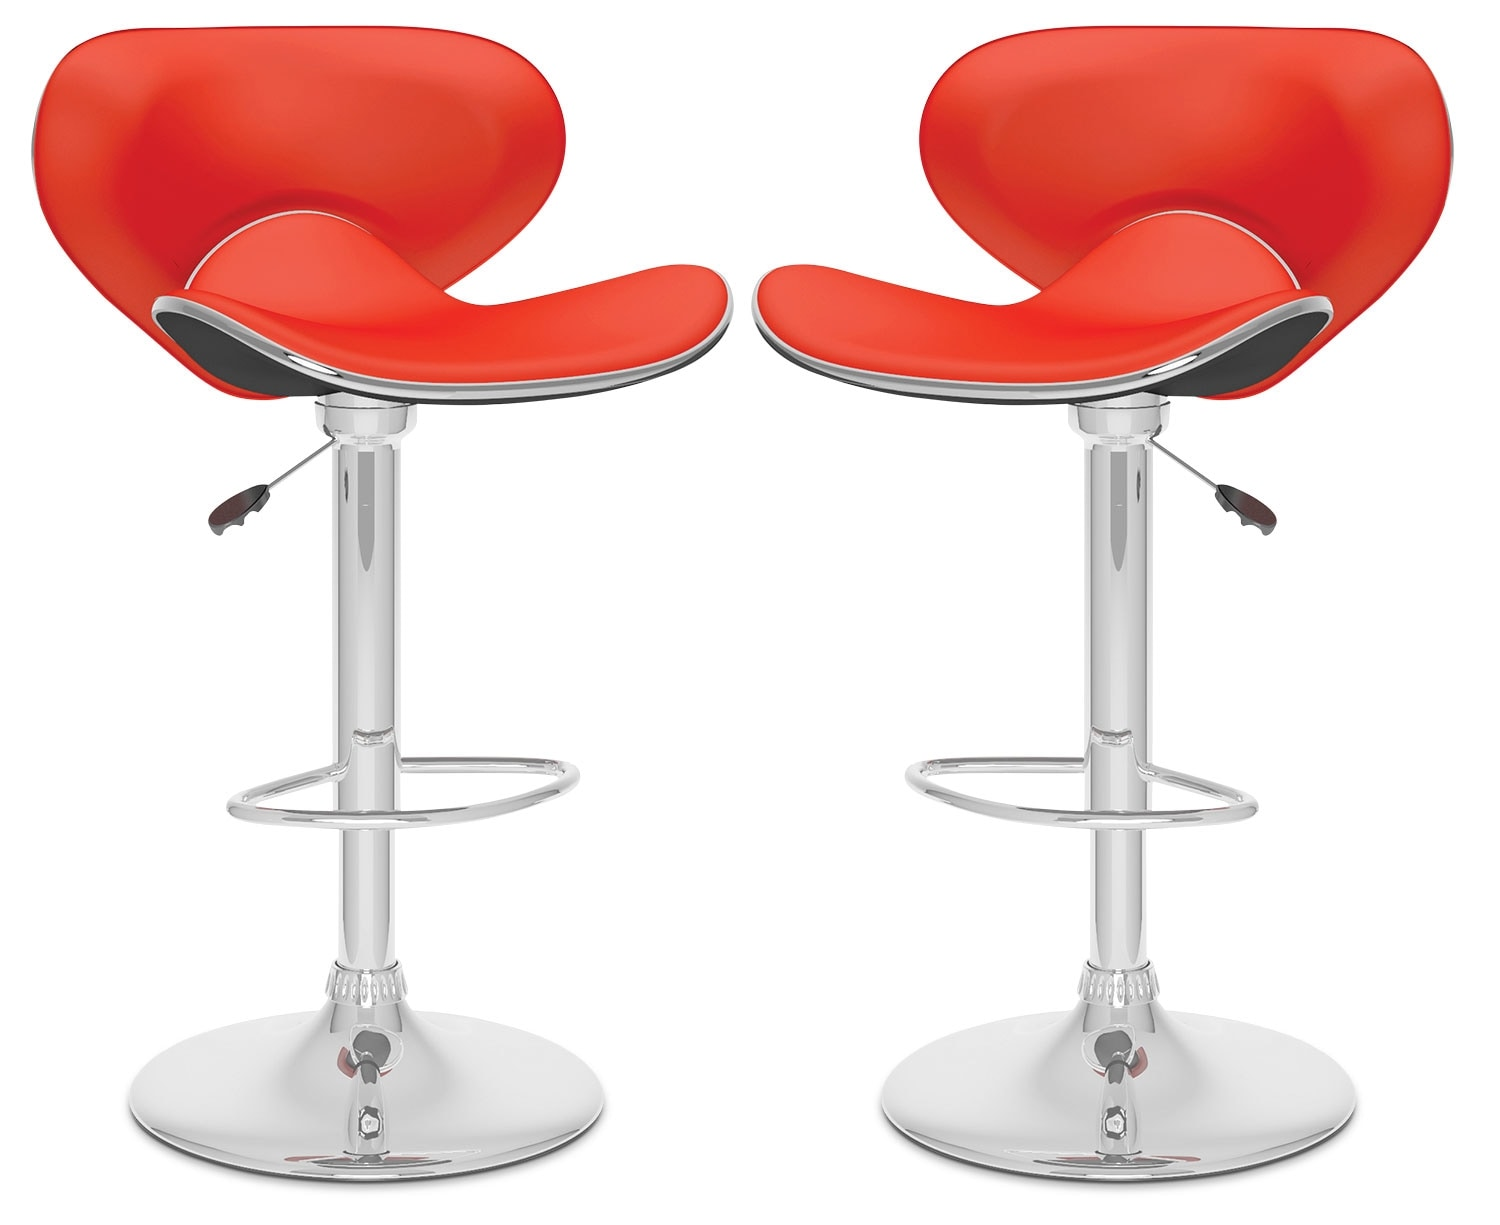 Dining Room Furniture - CorLiving Curved Form-Fitting Adjustable Bar Stool, Set of 2 – Red